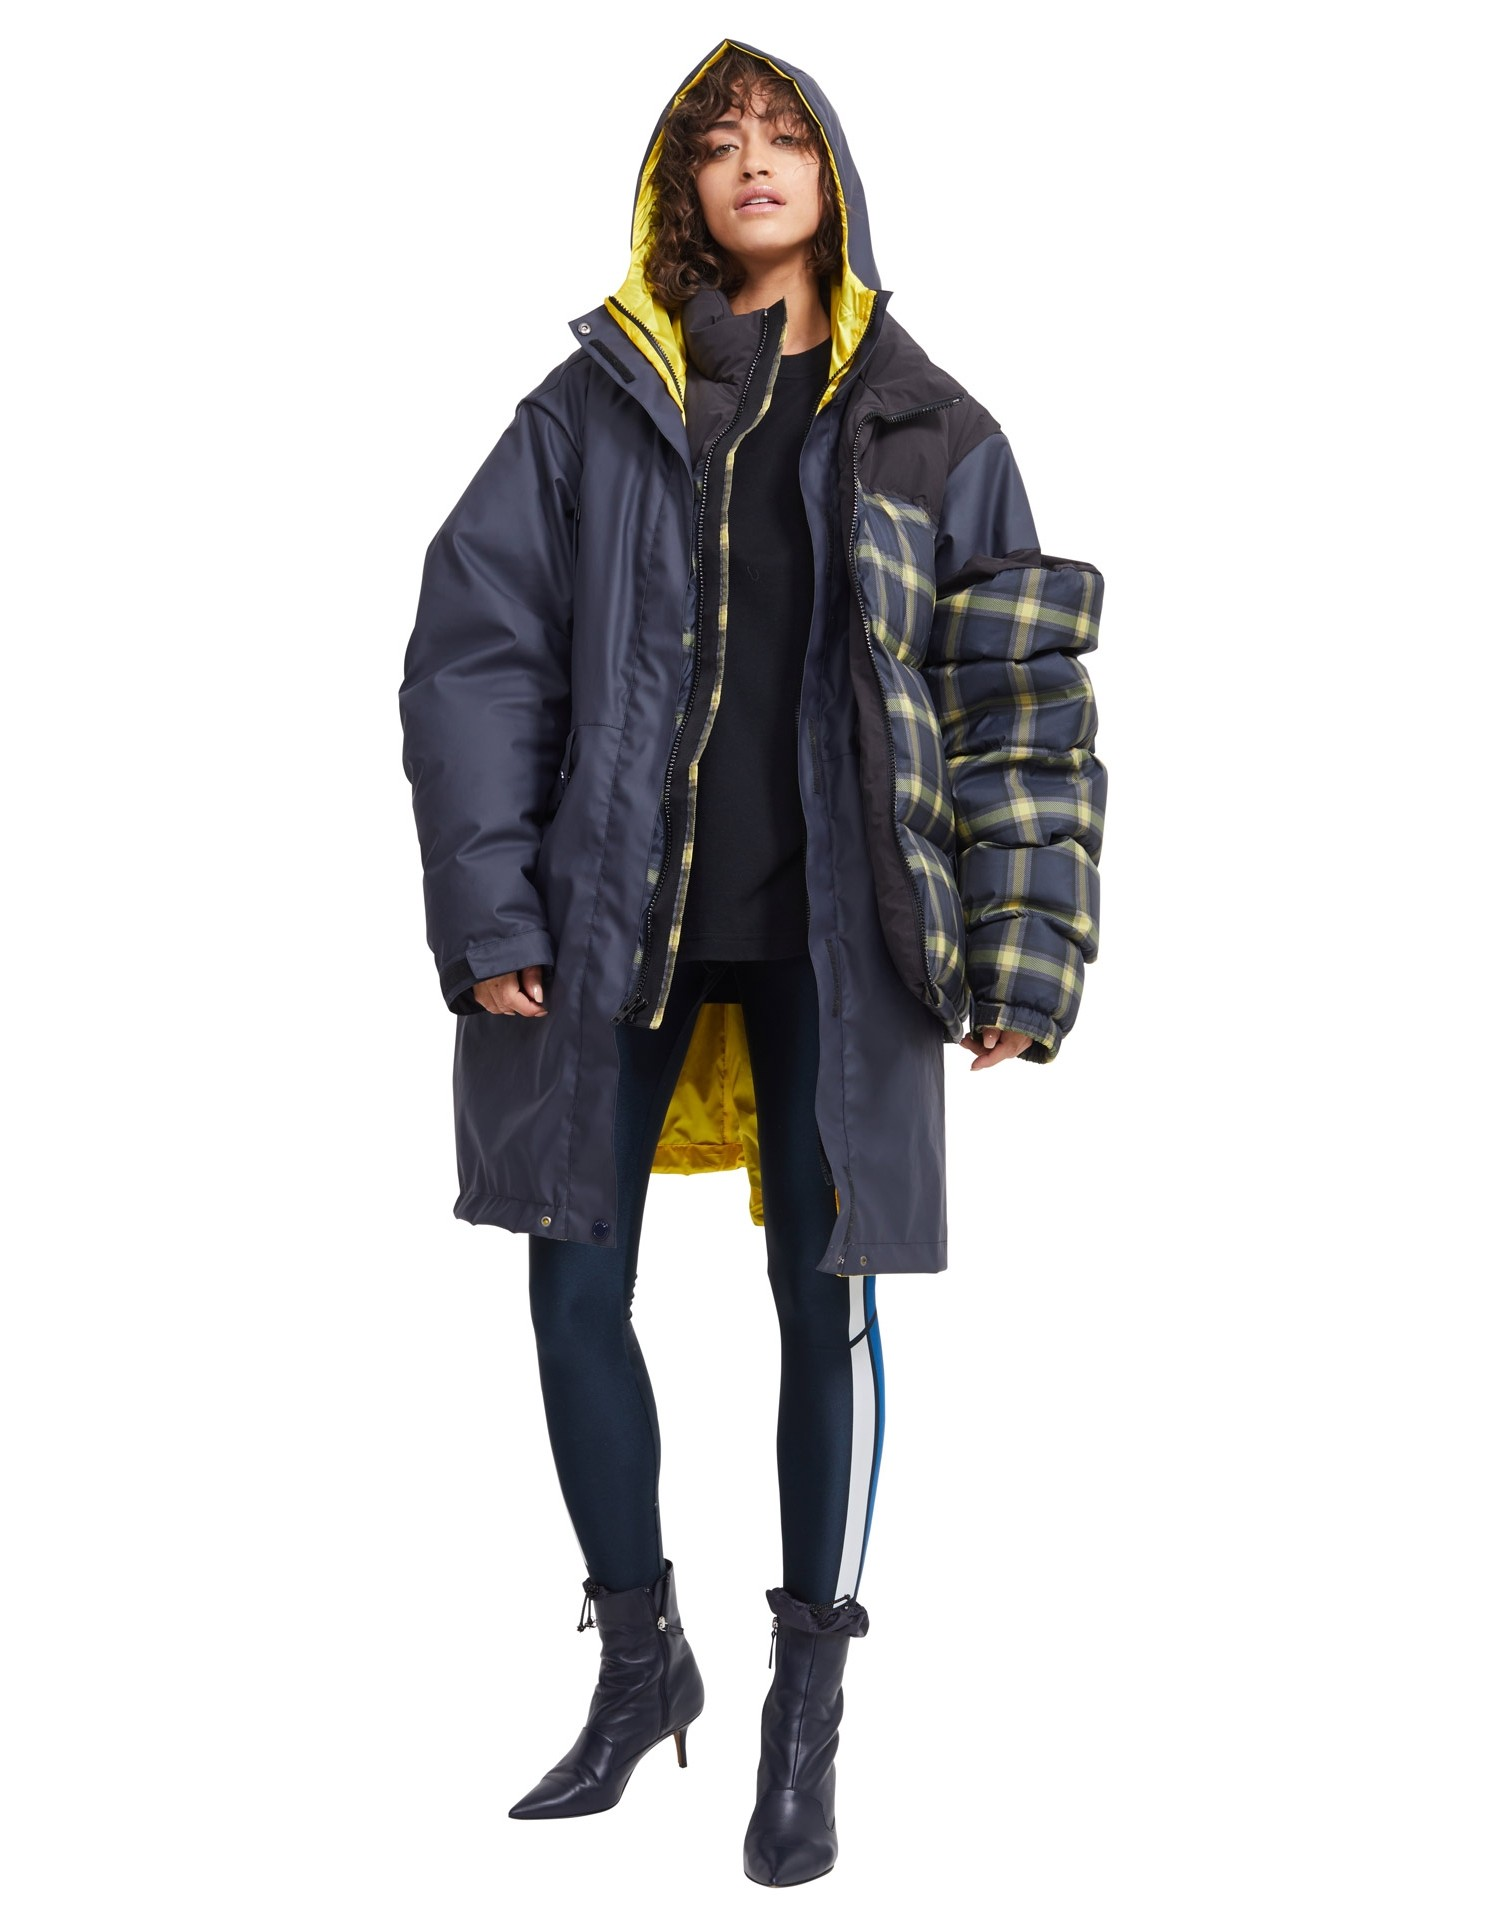 MONSE Plaid Puffer on Model Front View